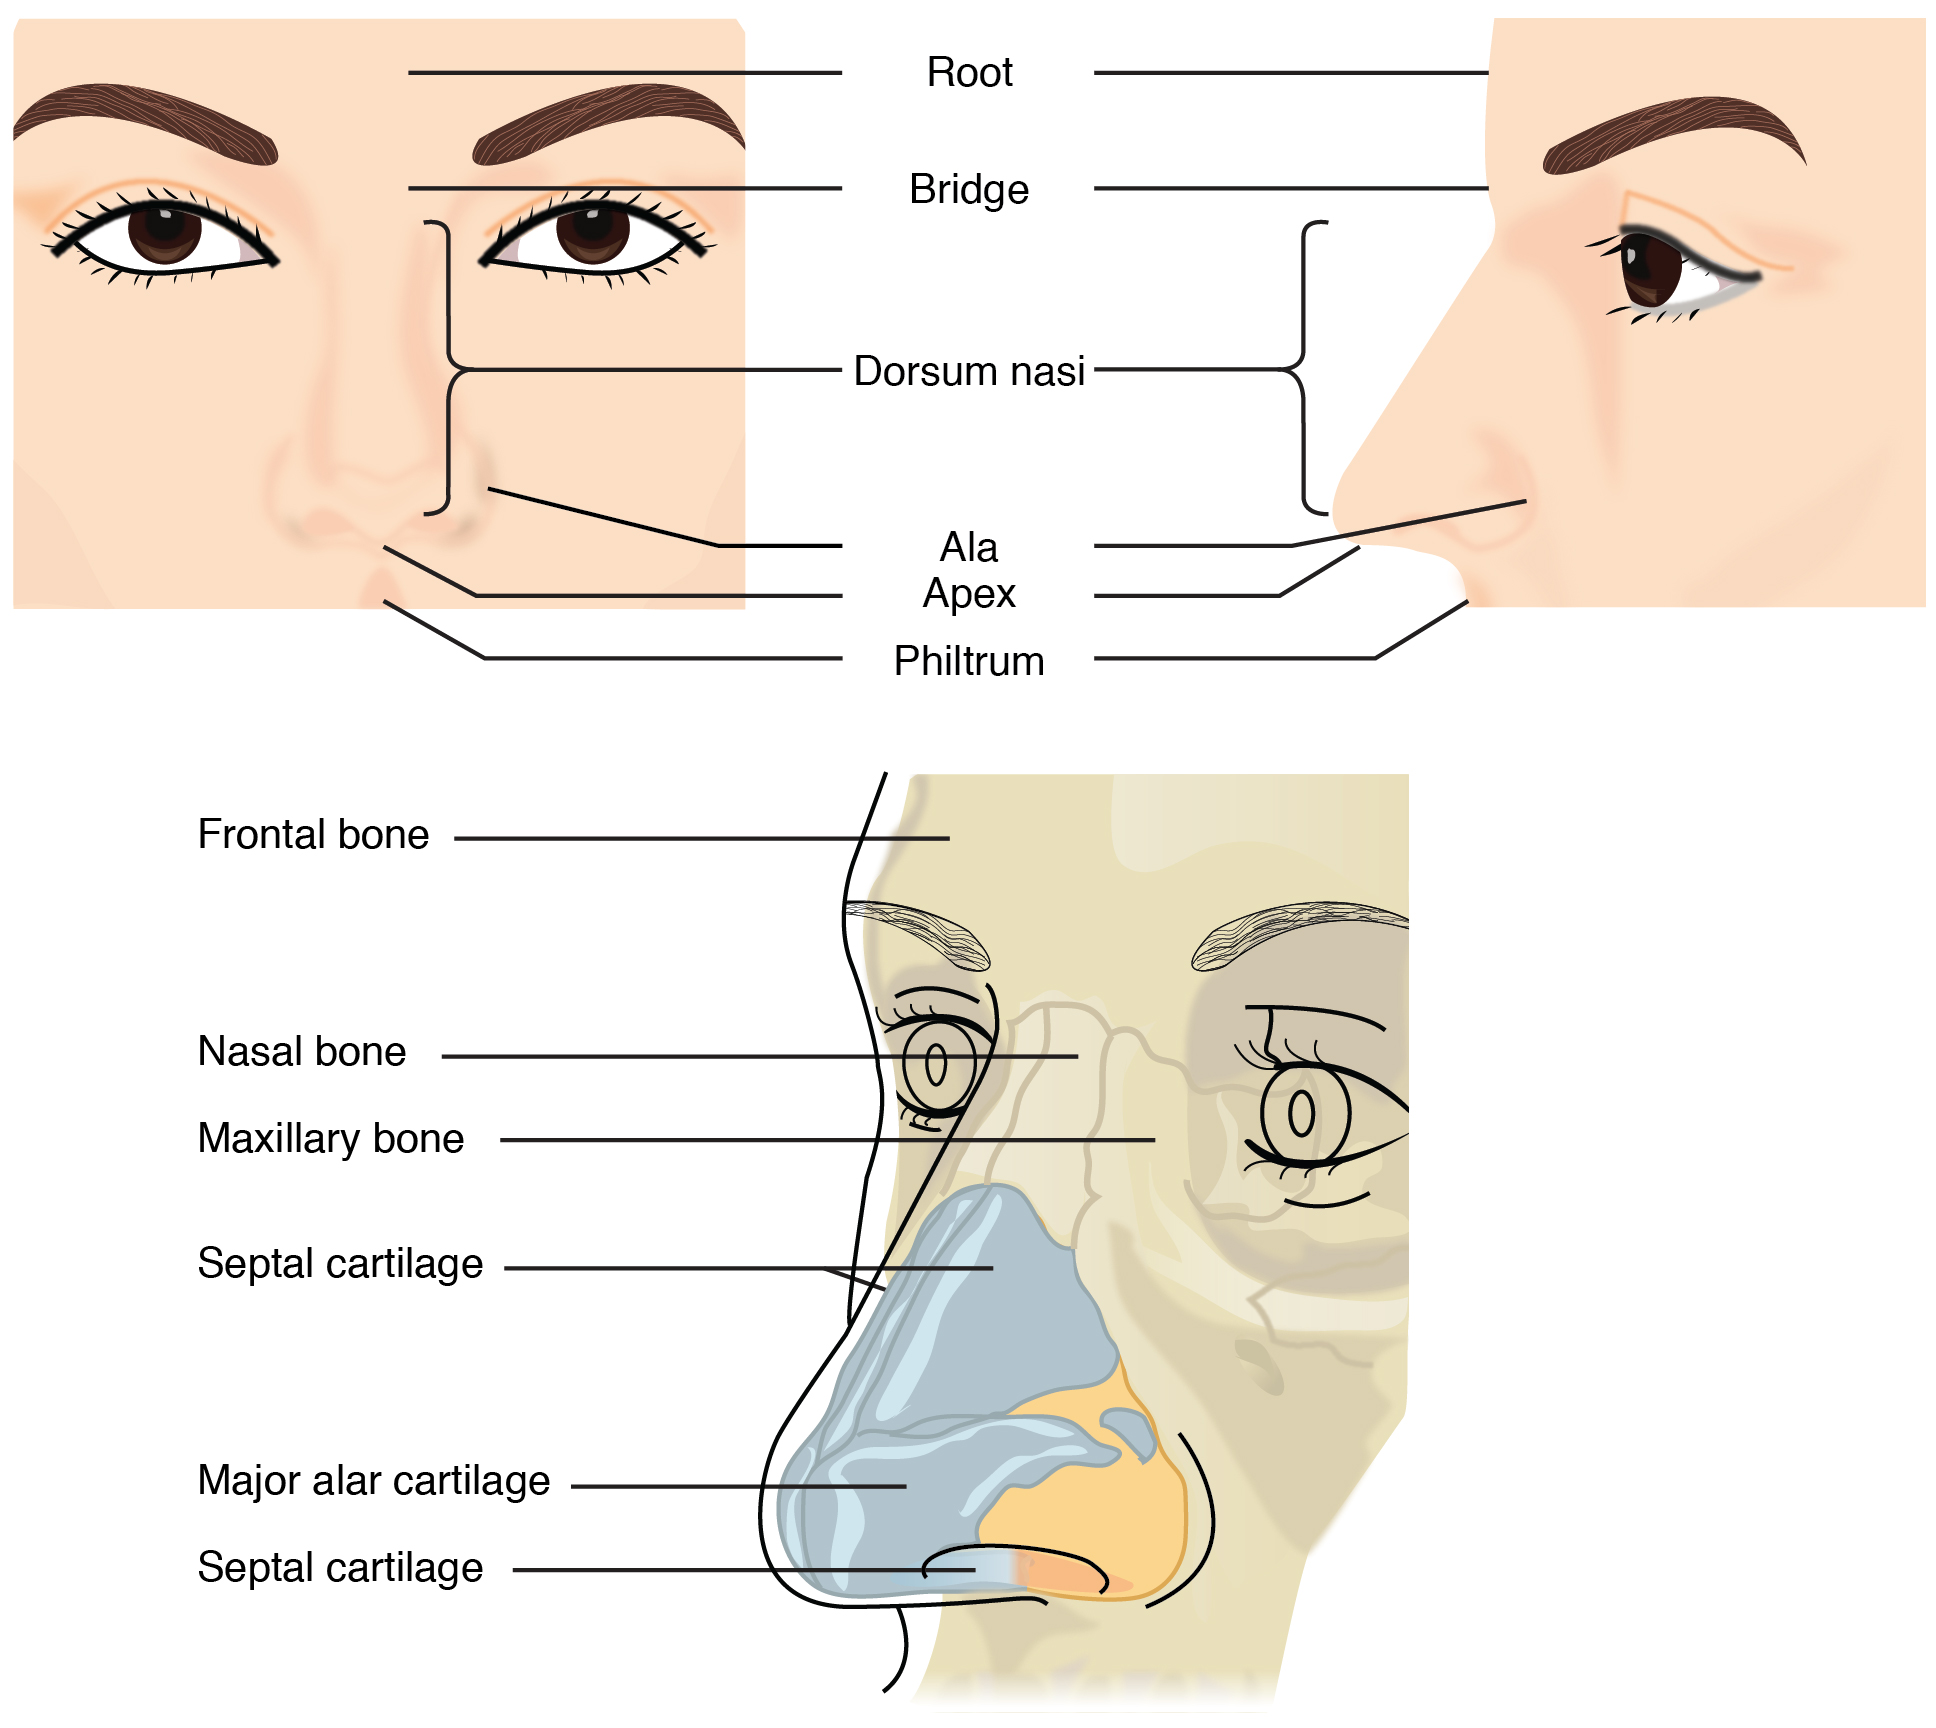 Nose Anatomy And Histology Of The Human Nose